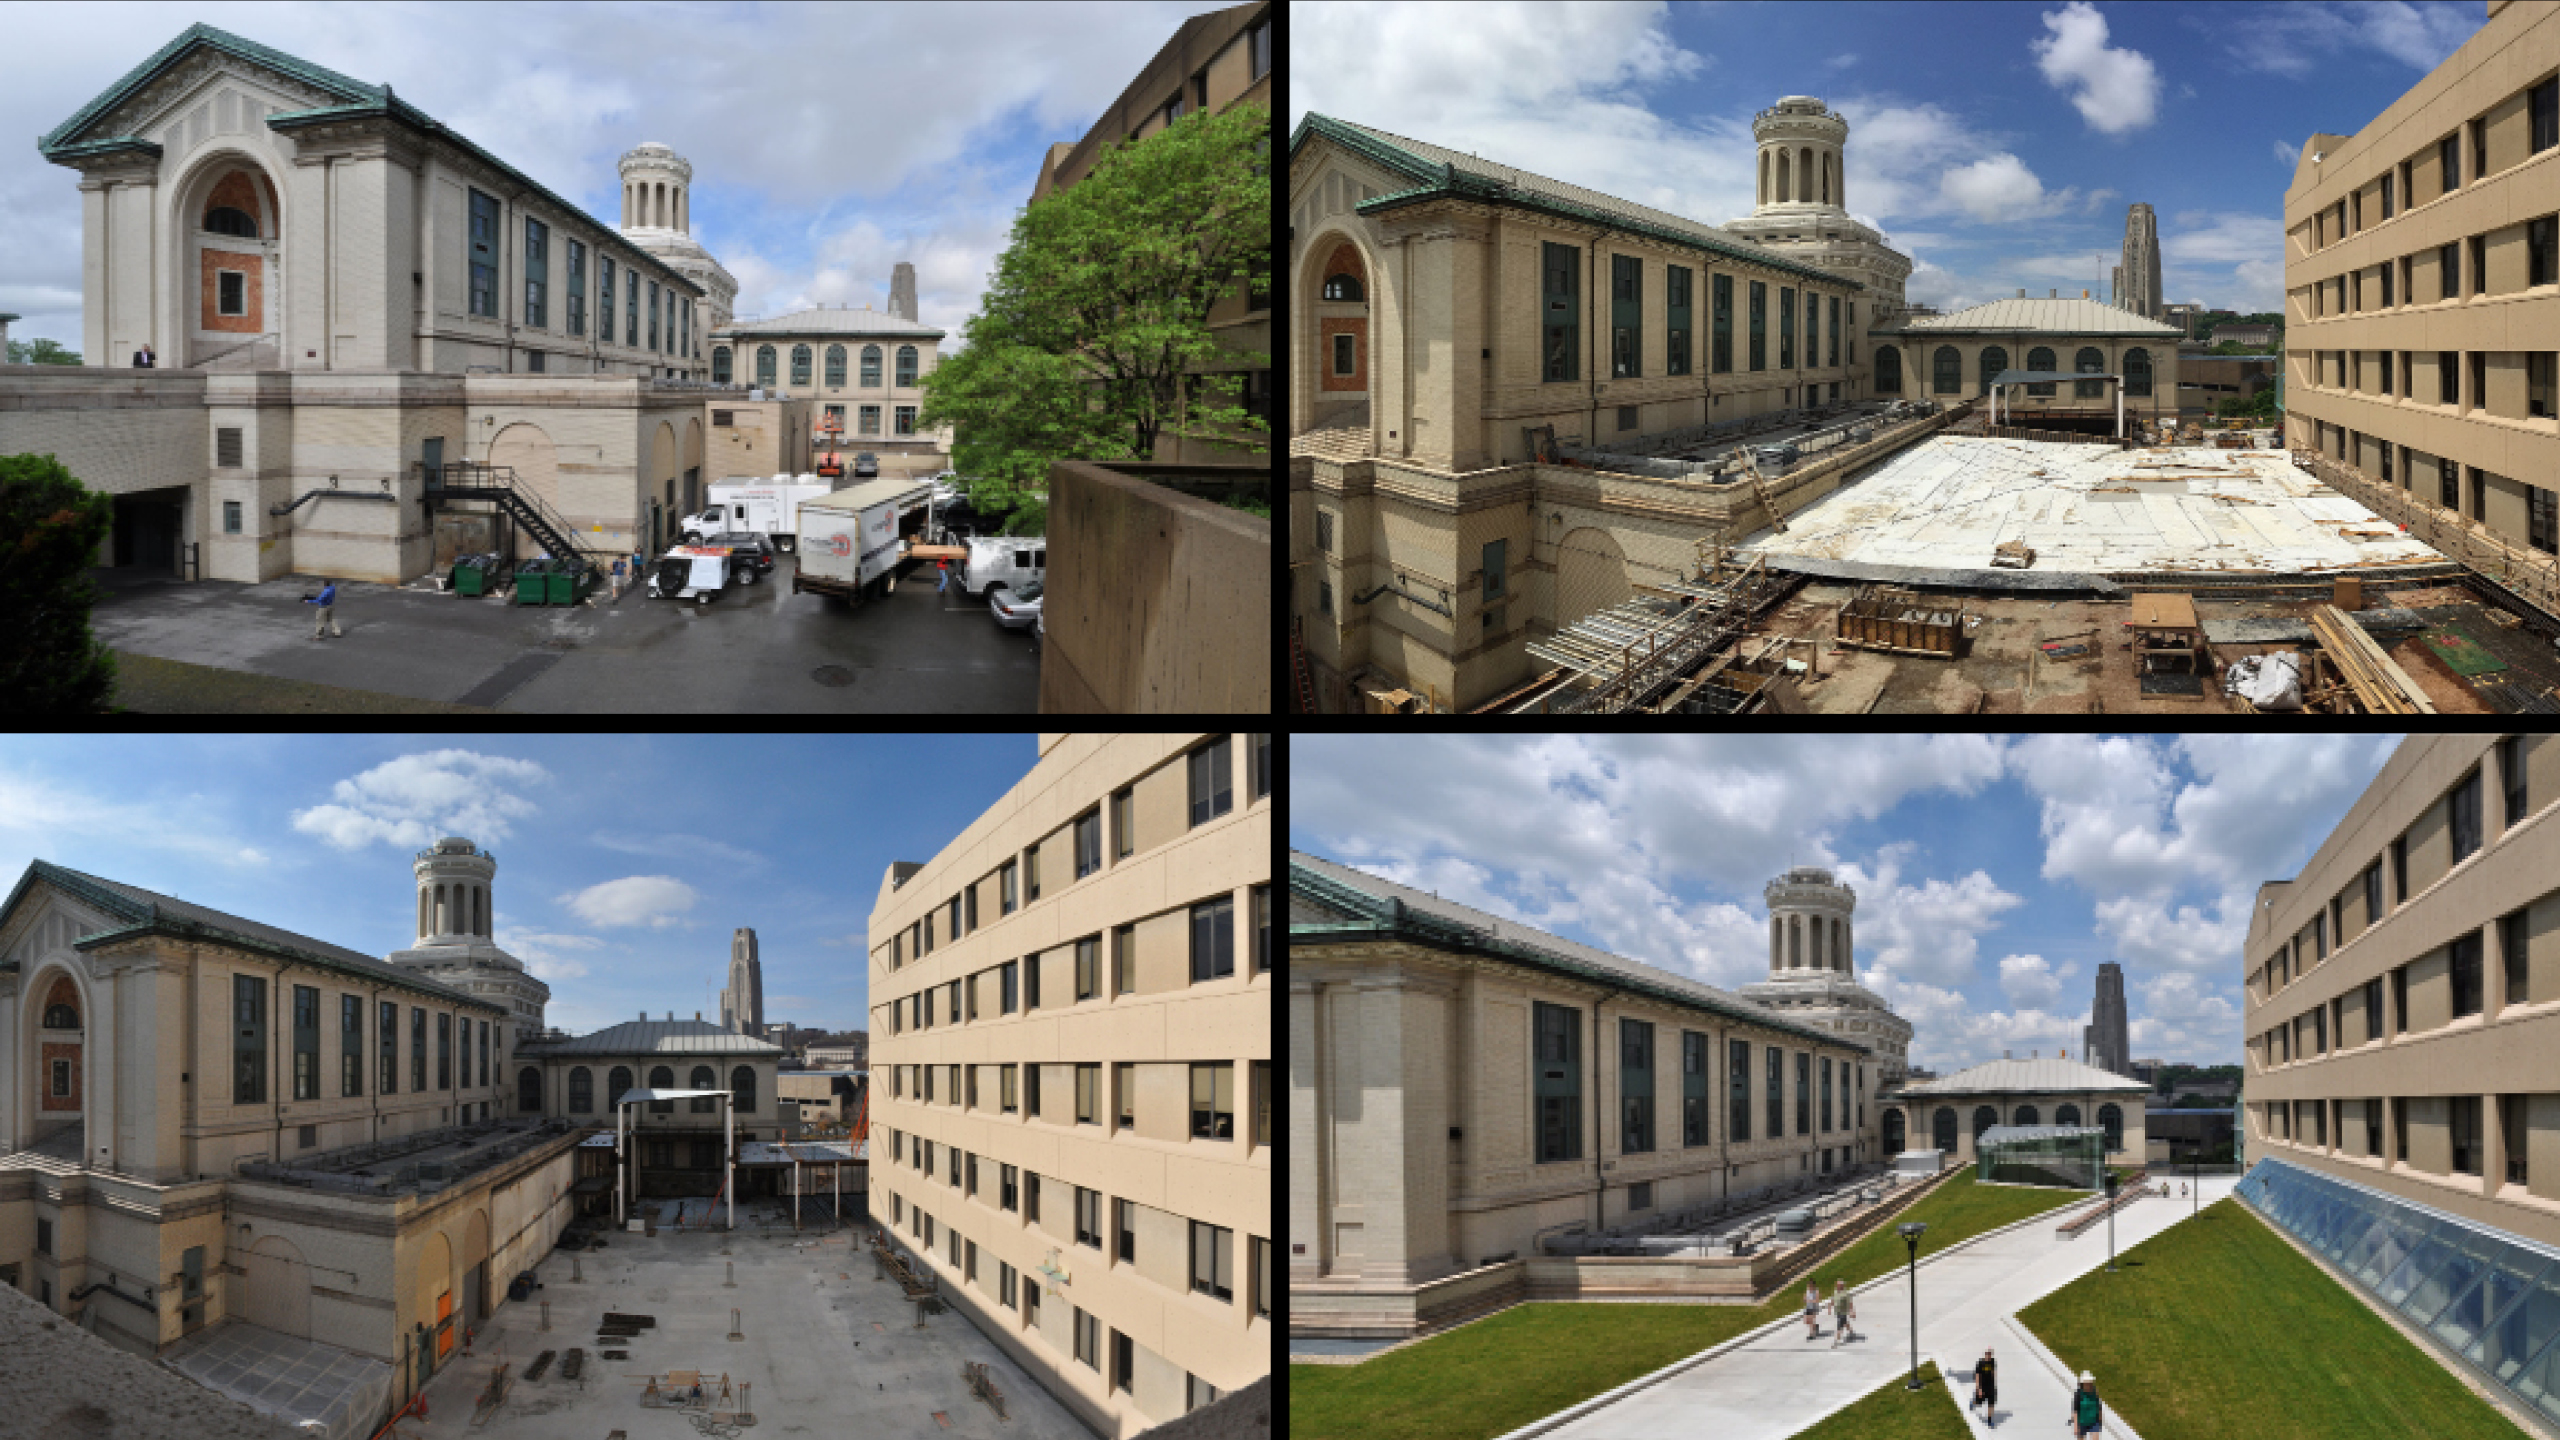 Scott Hall at Carnegie Mellon University / image 12